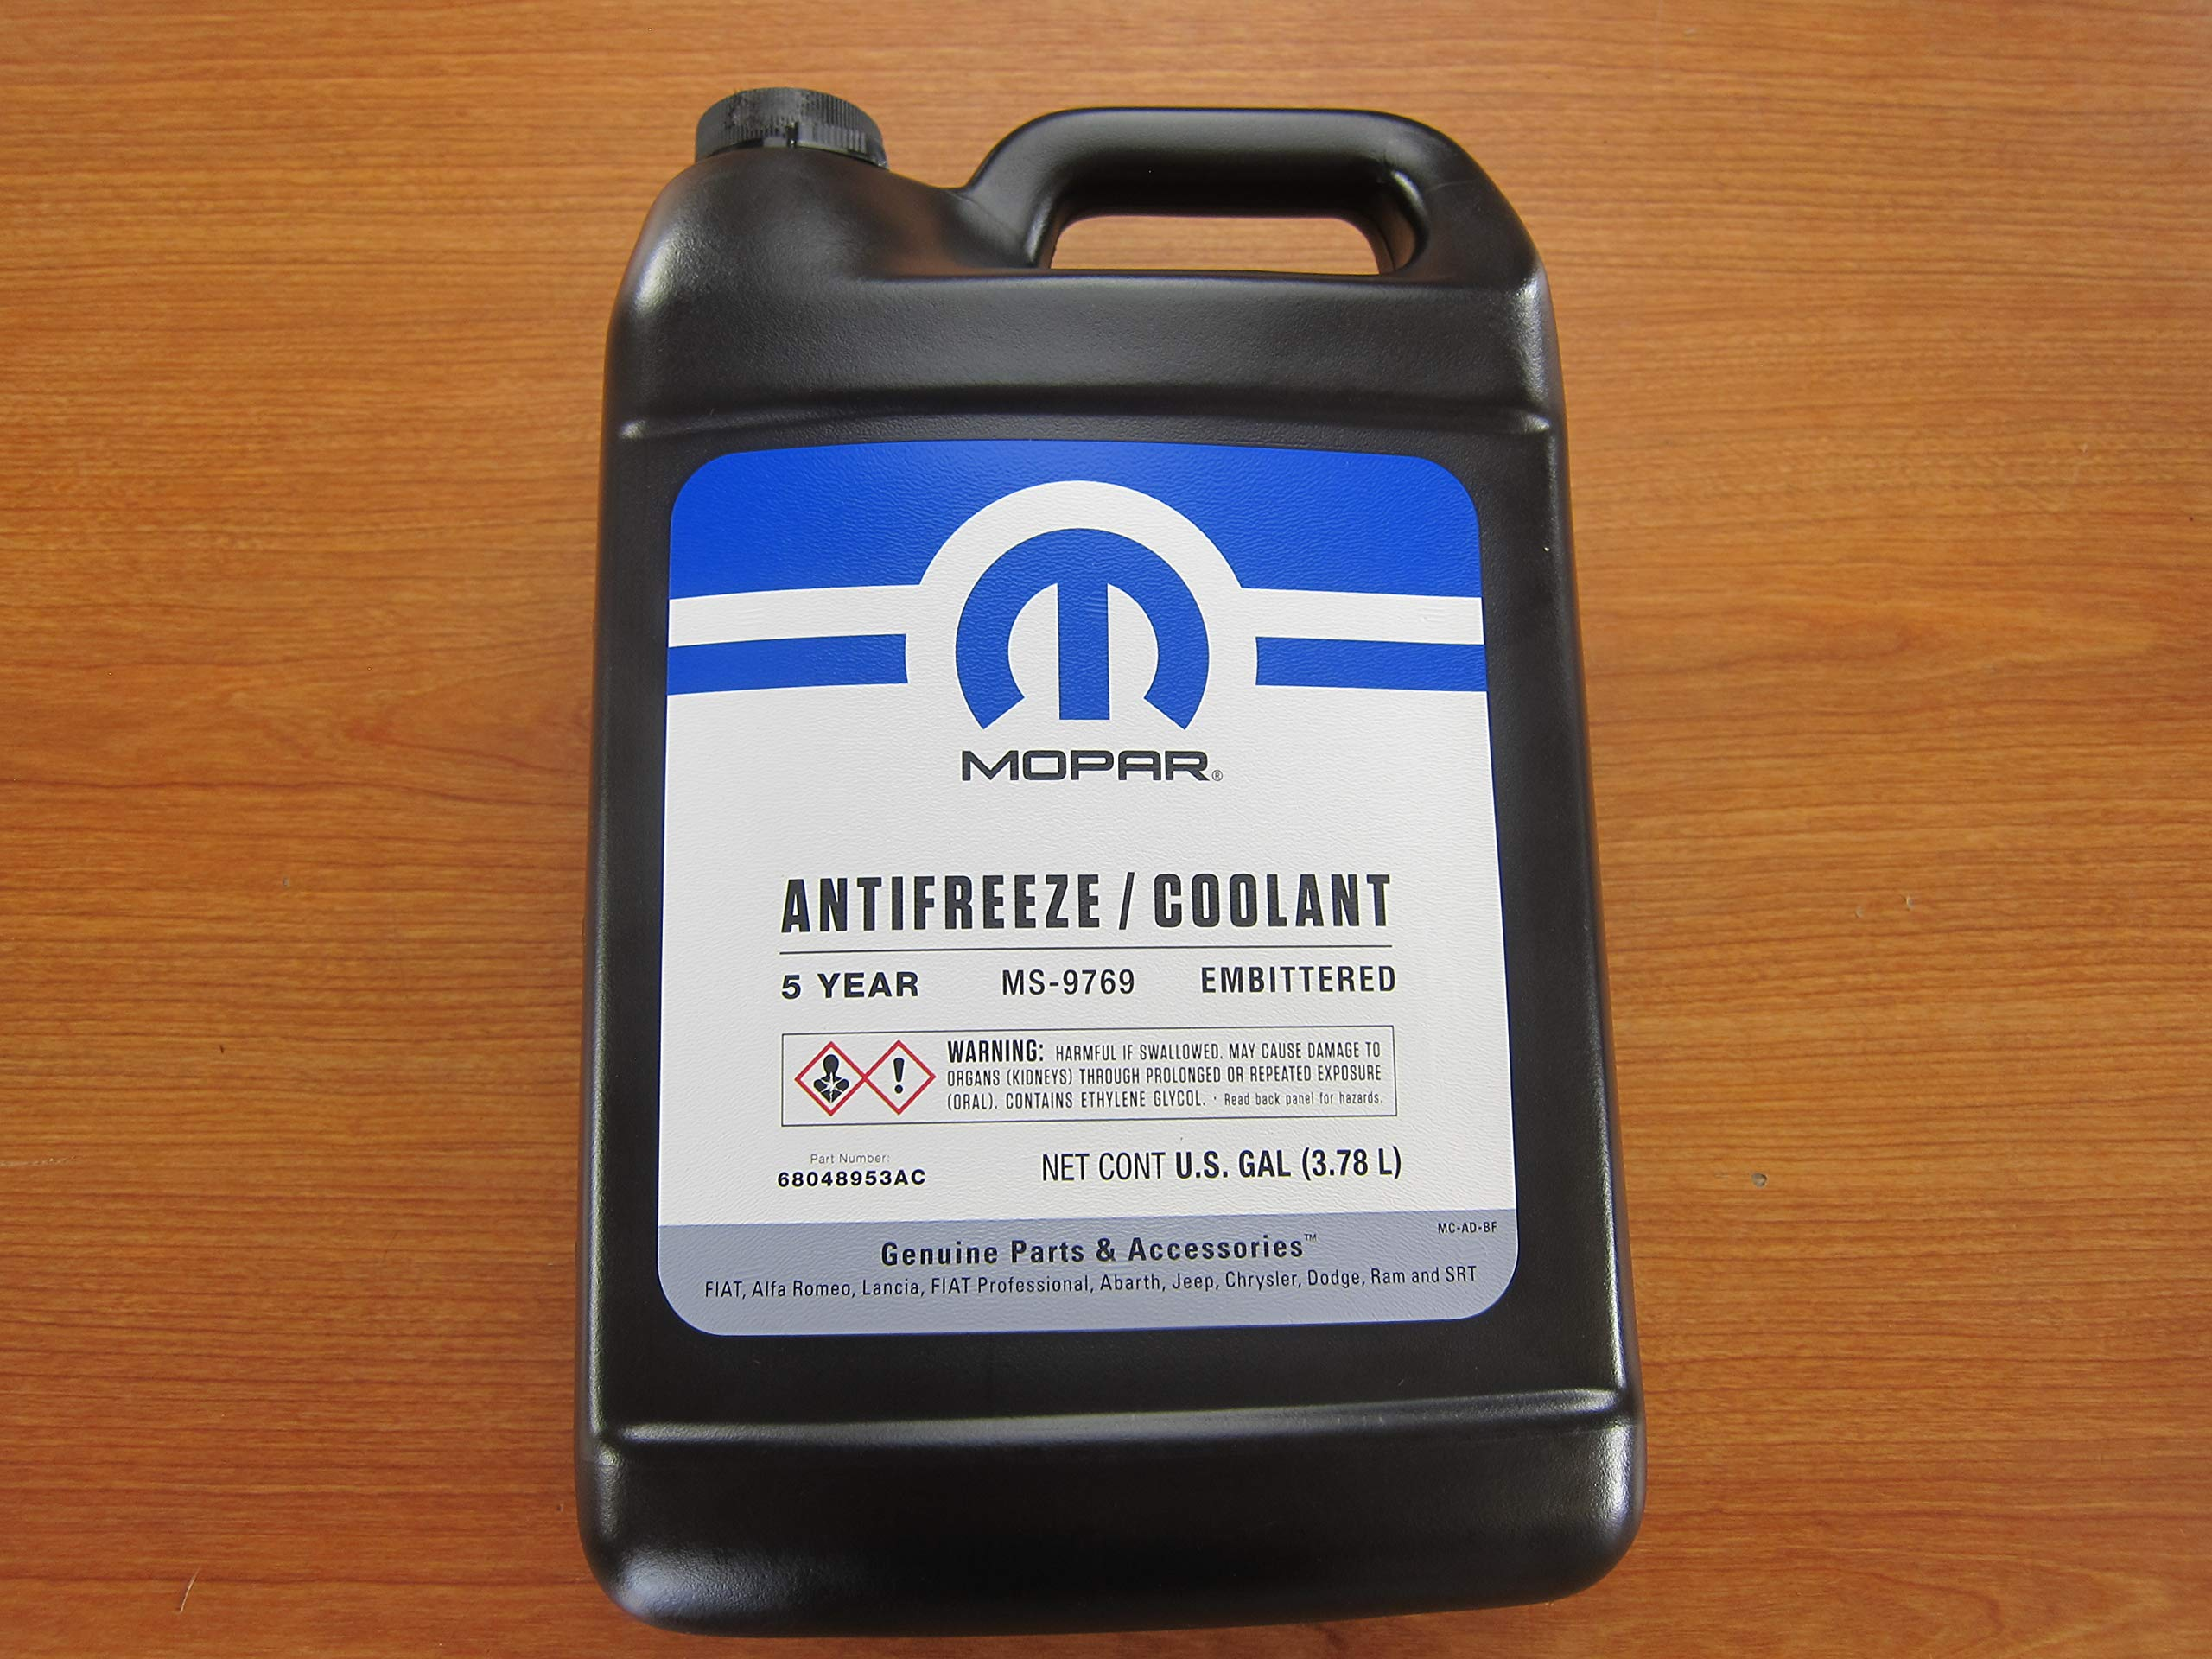 Mopar Chrysler Dodge Jeep Ram Five Year Formula Antifreeze/Coolant New OEM